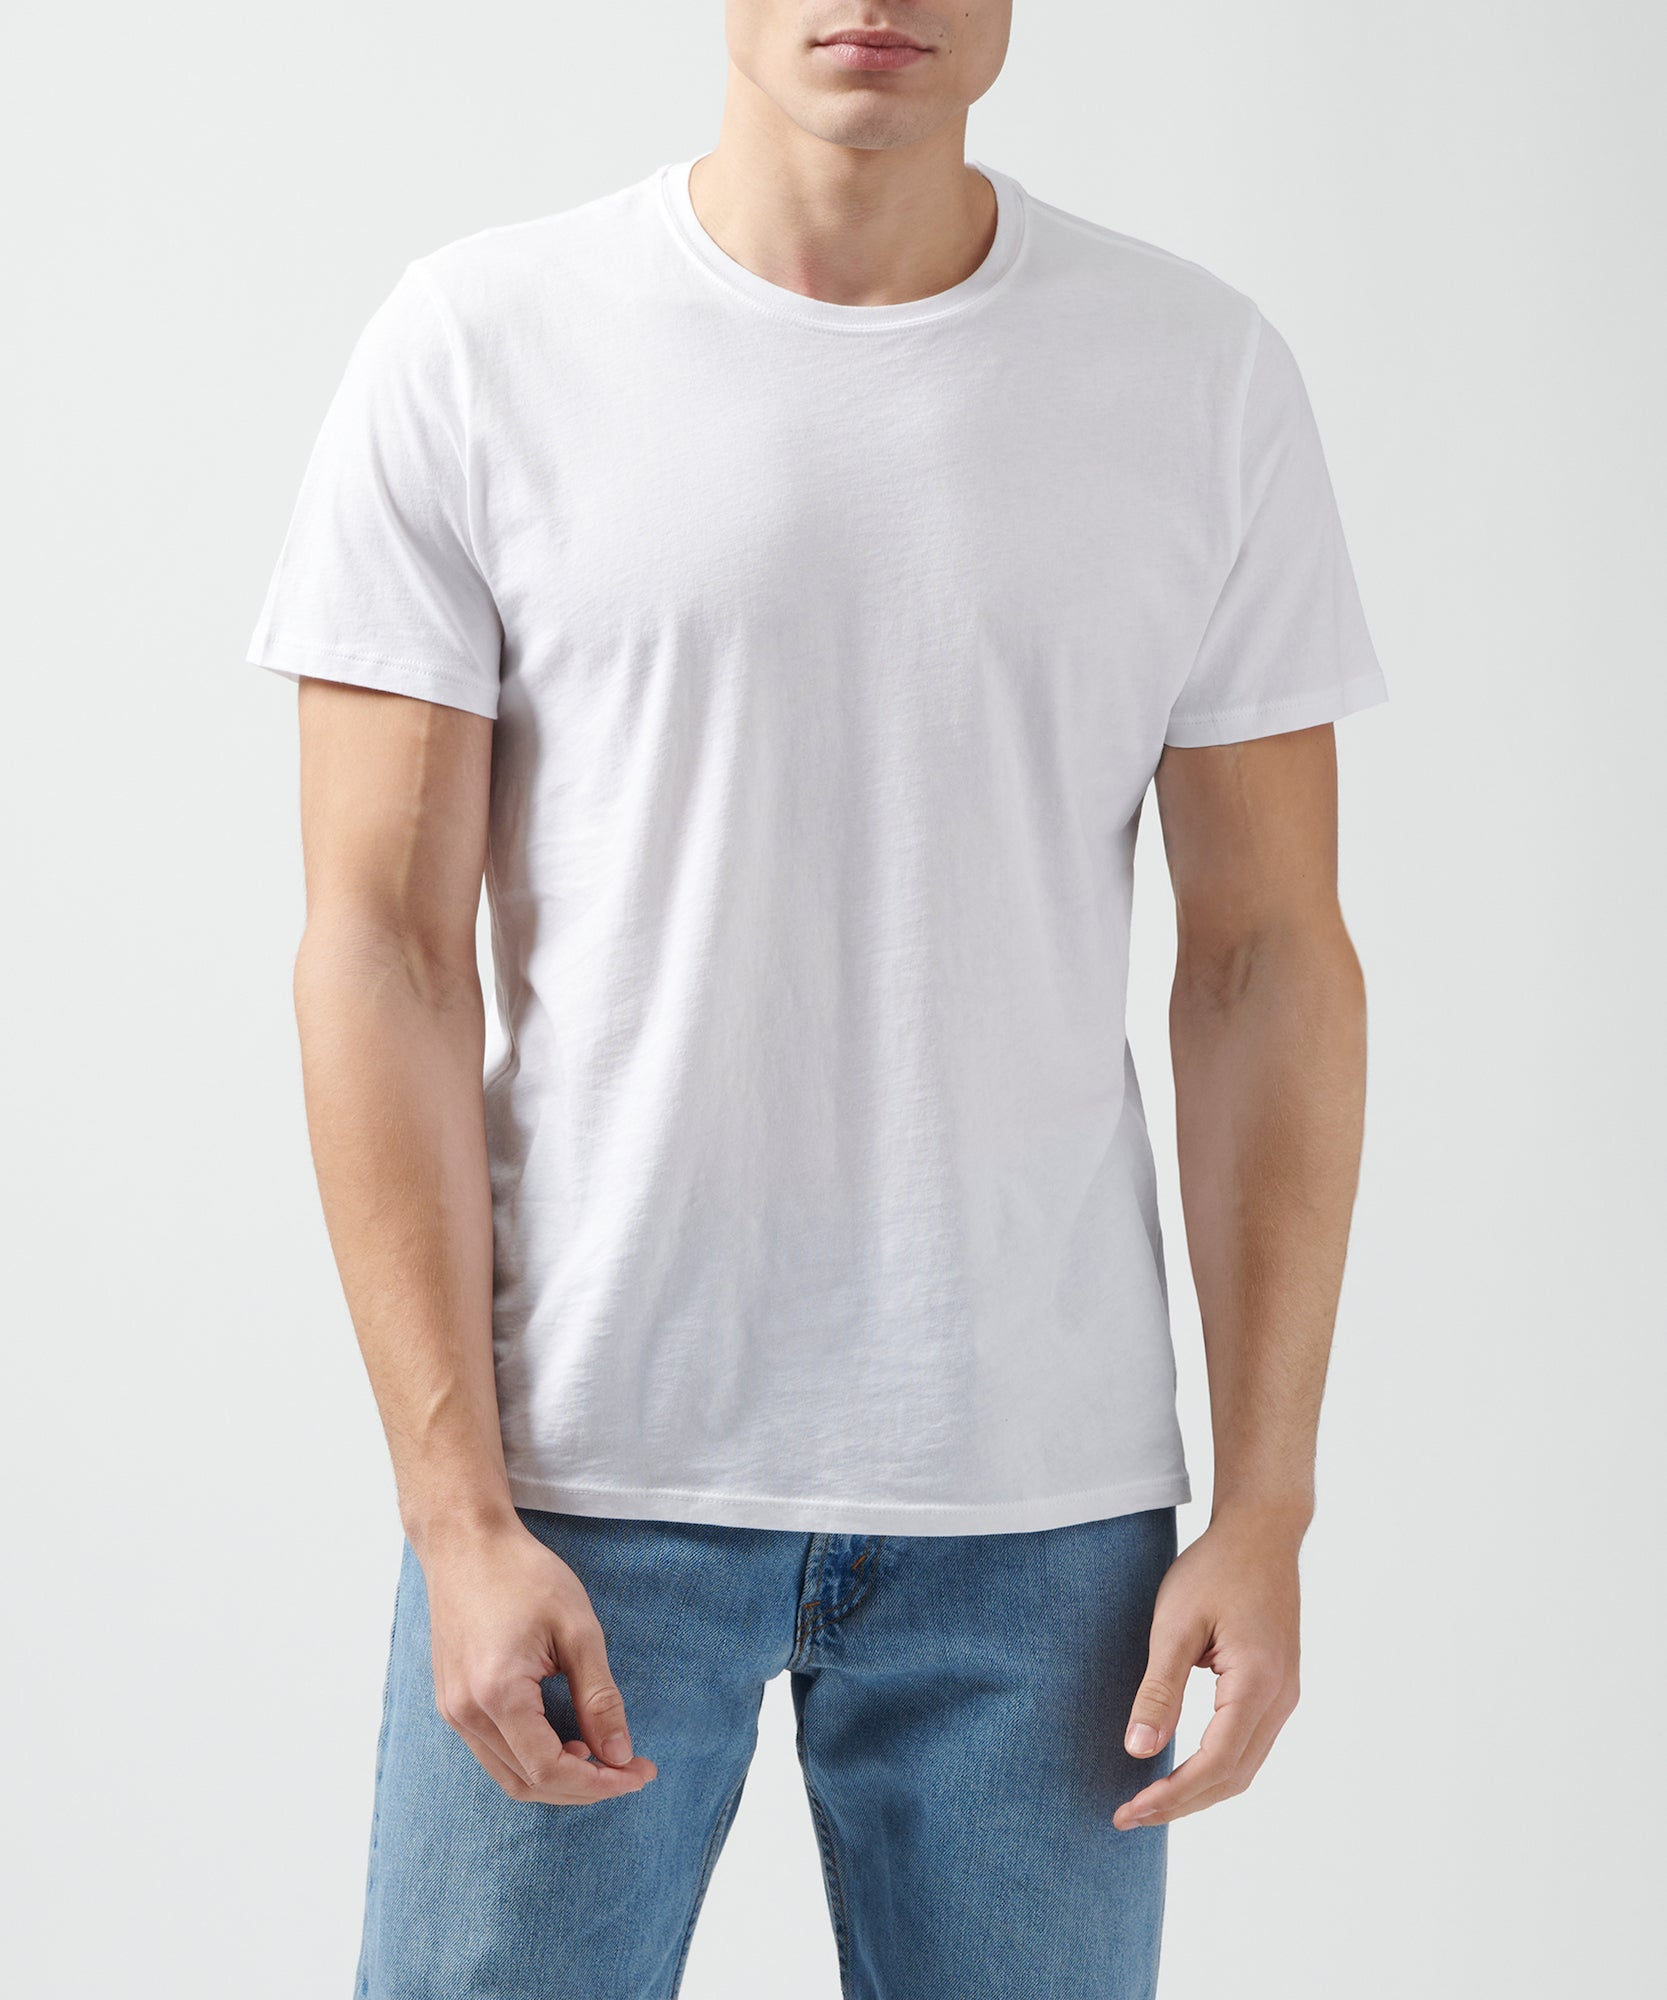 White Classic Jersey Crew Neck Tee - Men's Short Sleeve Tee by ATM Anthony Thomas Melillo